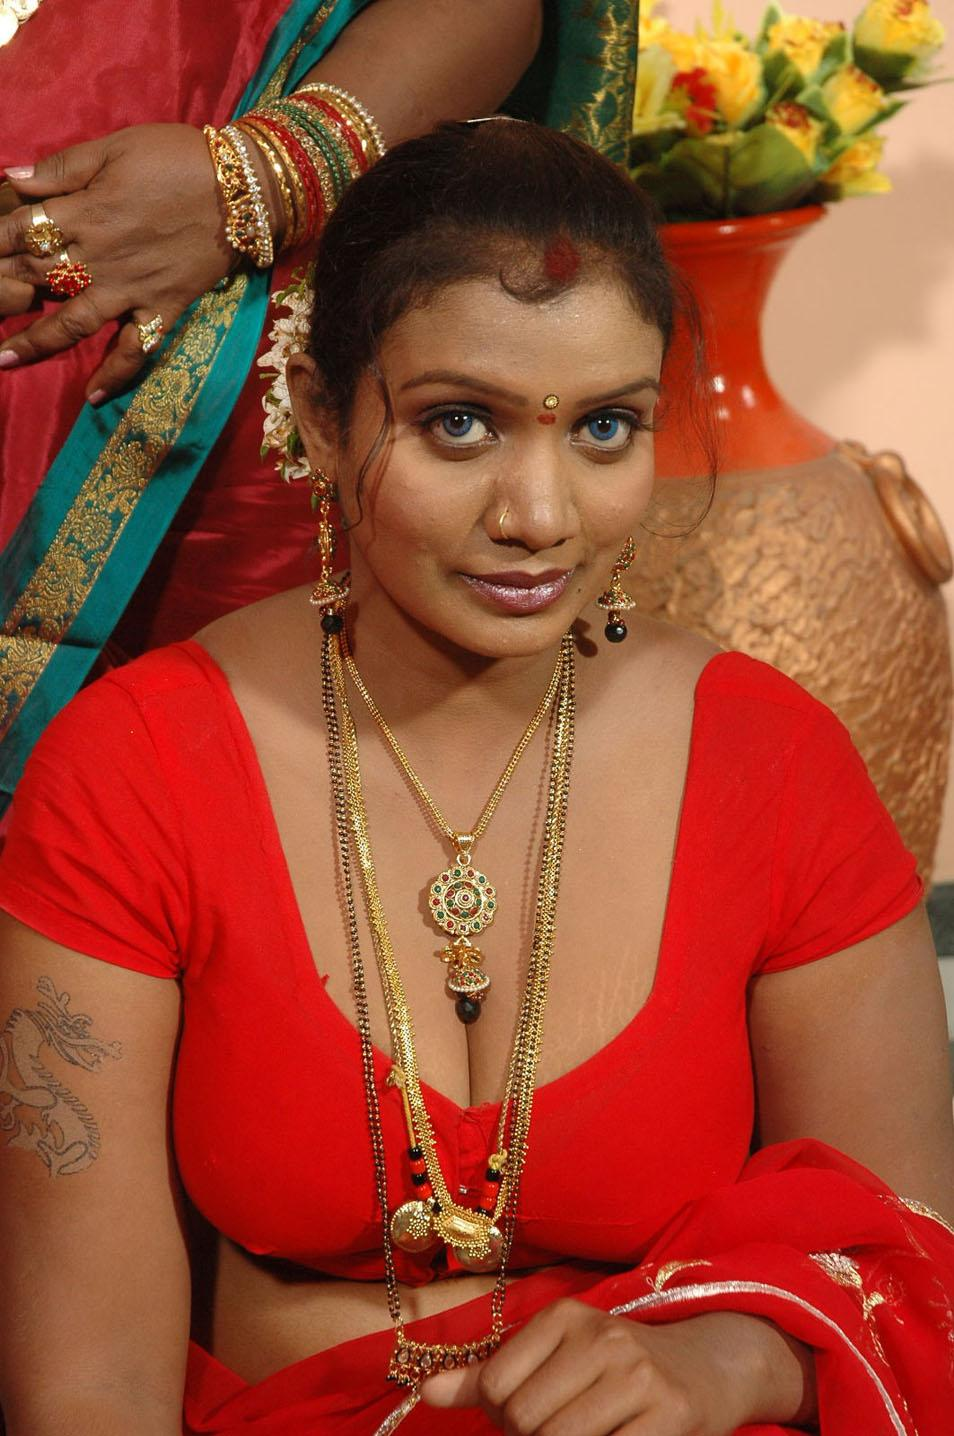 telugu entertainment: mallika latest hot images